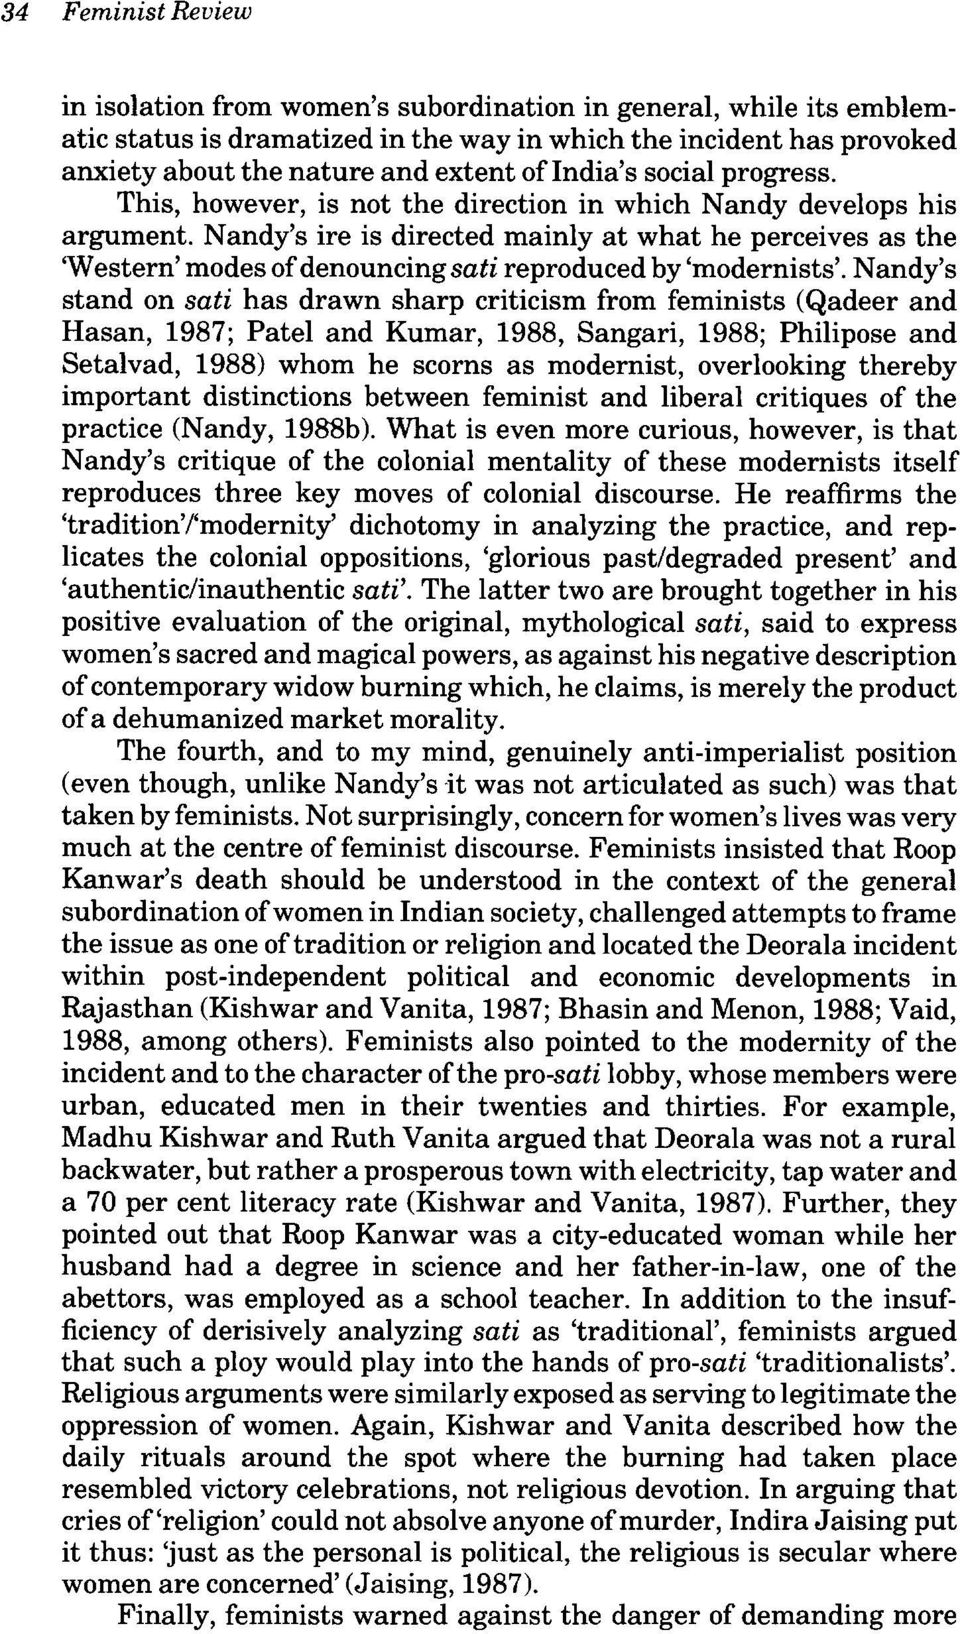 Nandy's ire is directed mainly at what he perceives as the 'Western' modes of denouncing sati reproduced by 'modernists'.